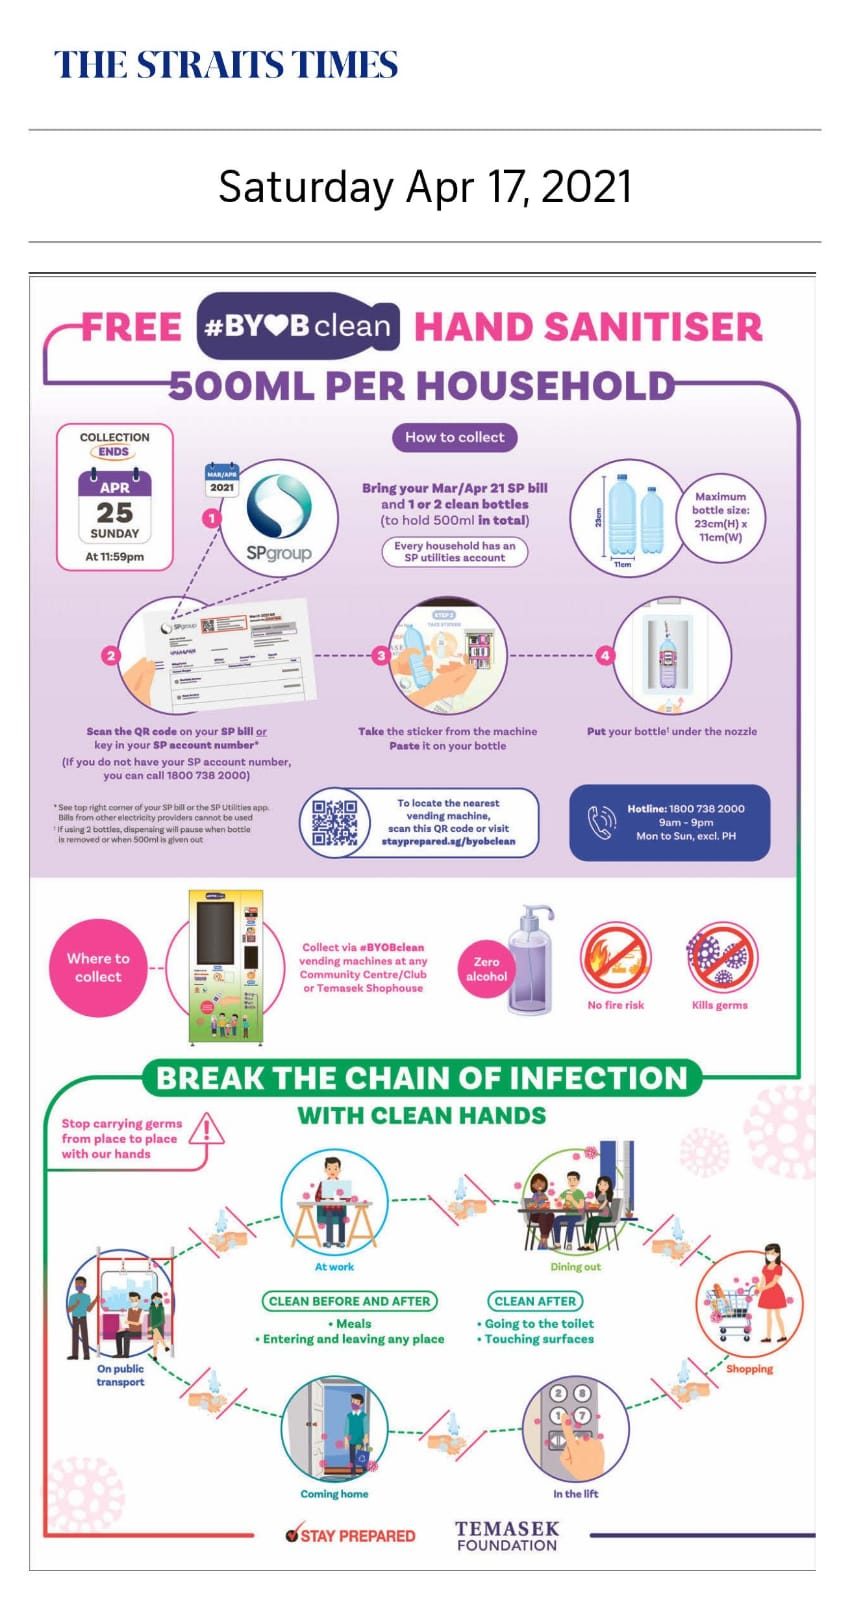 Free #BYOBclean Hand Sanitiser 500ml Per Household - Published in The Straits Times April 17, 2021